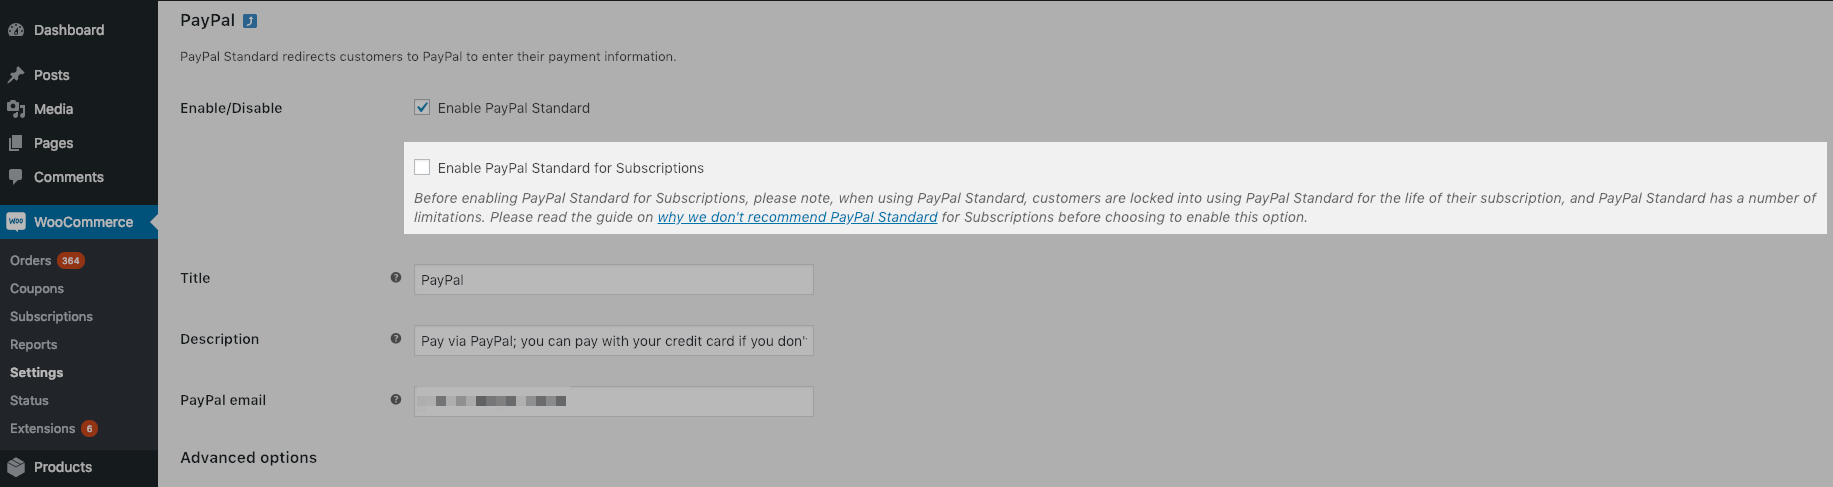 PayPal Standard for Subscriptions Setting - Disabled